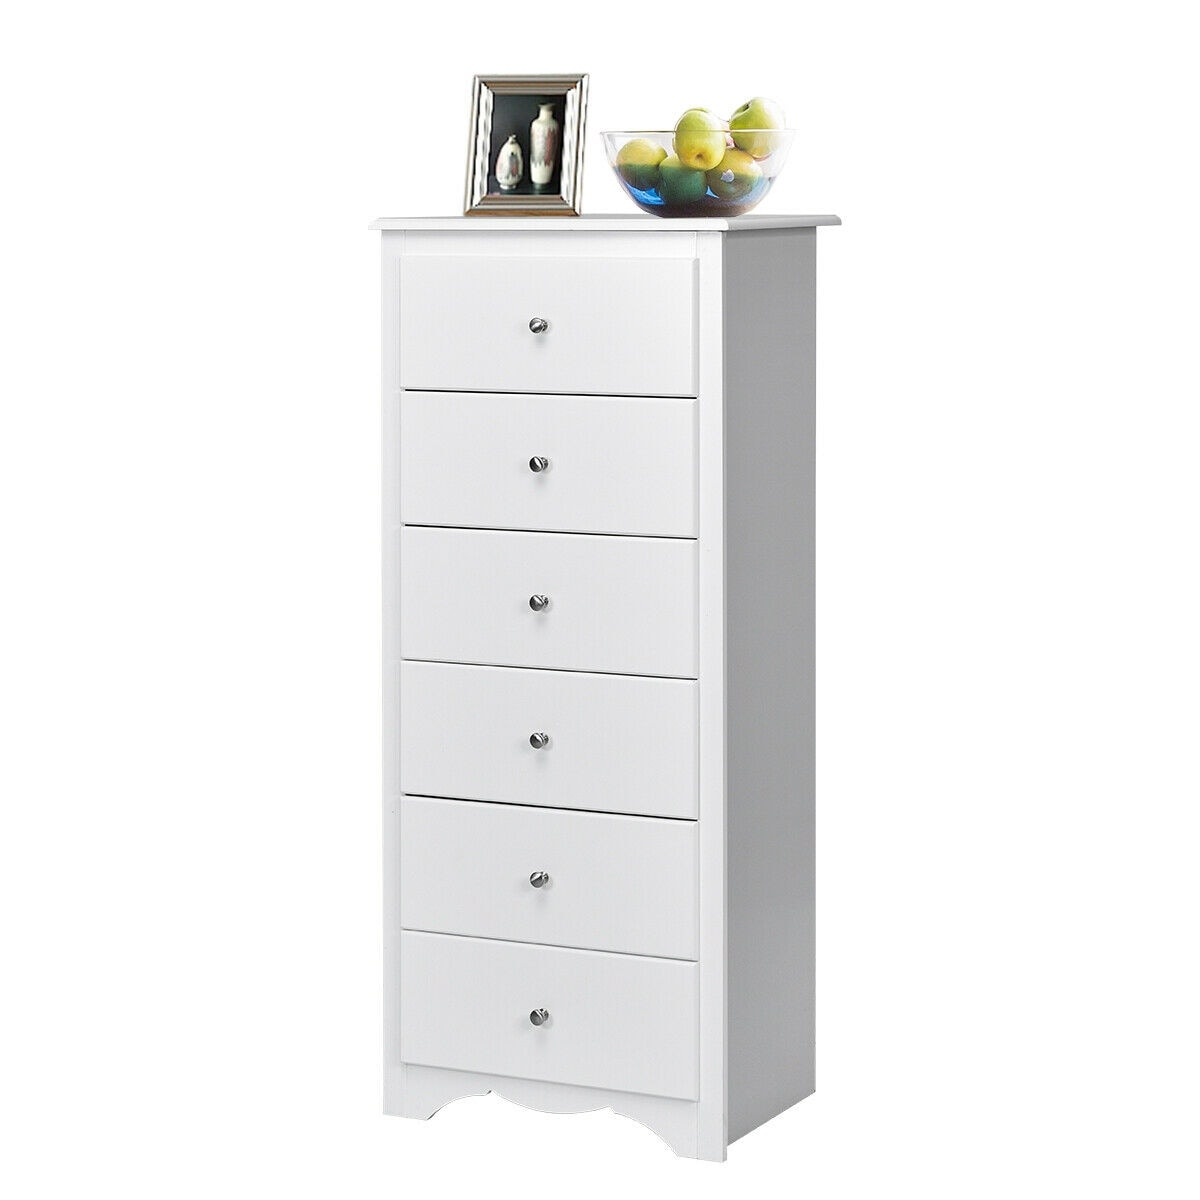 Gymax 6 Drawer Chest Dresser